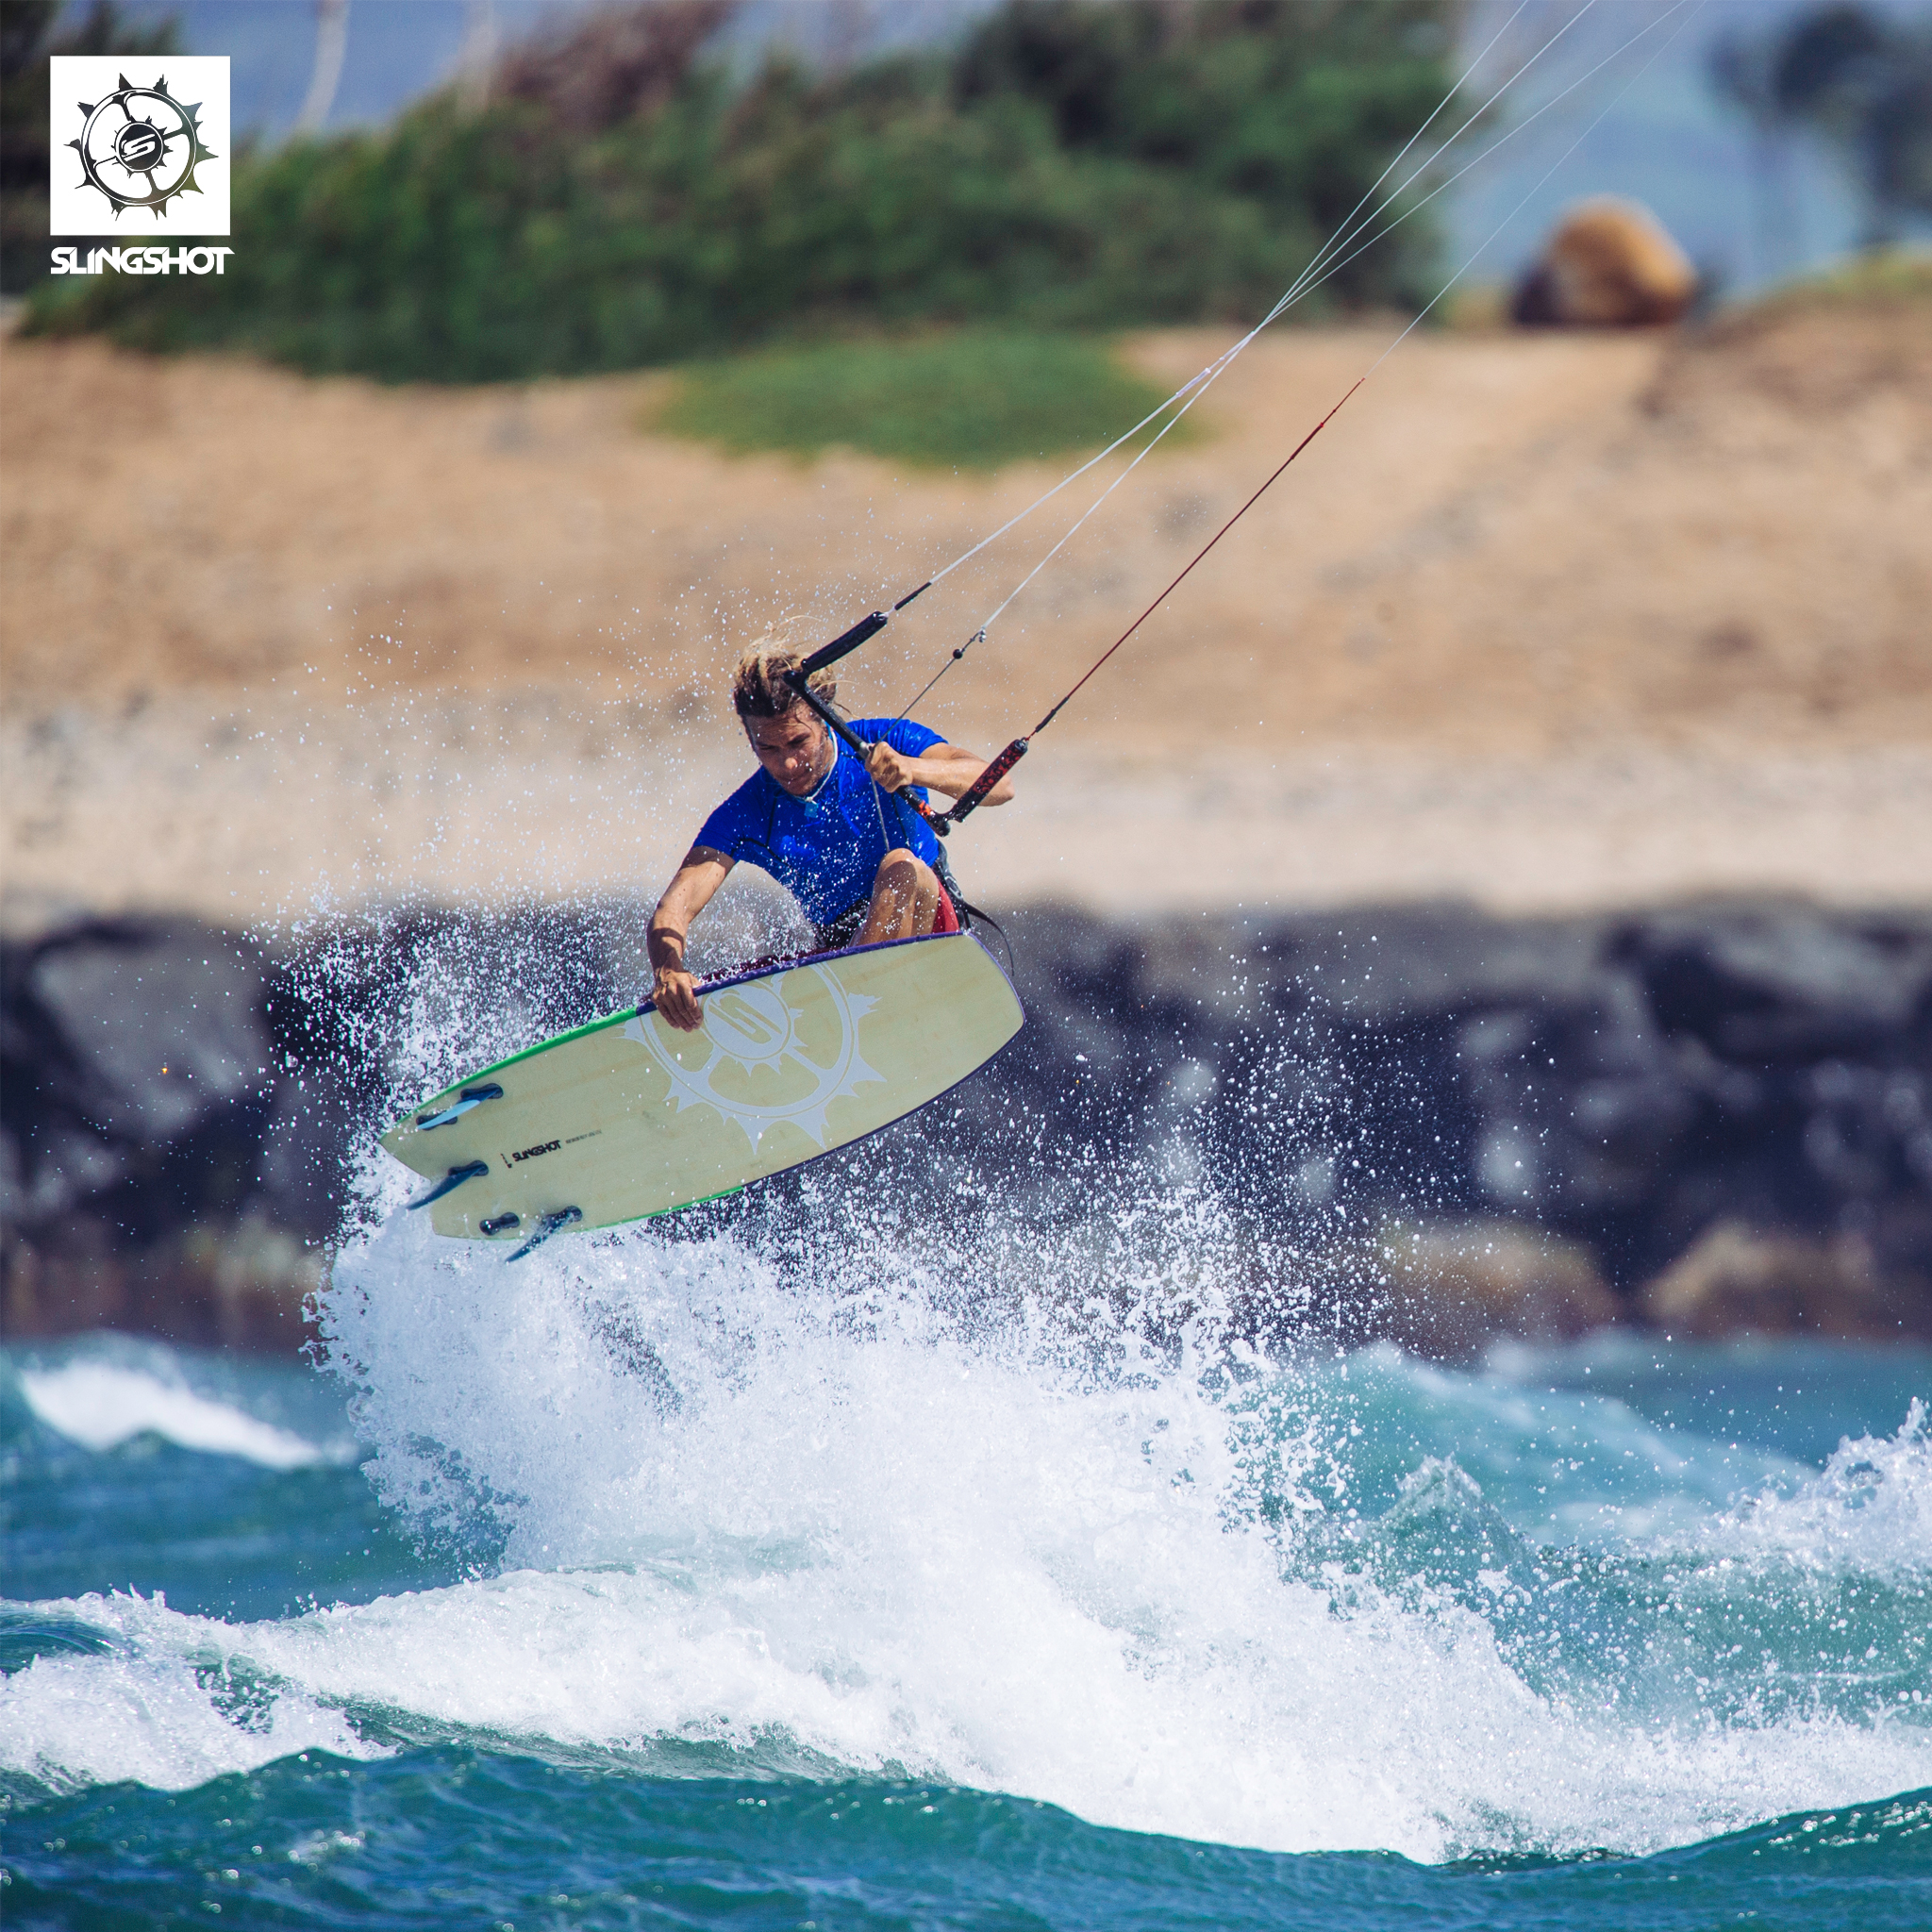 kitesurf wallpaper image - Patrick Rebstock on the 2015 Slingshot Angry Swallow kiteboard - in resolution: iPad 2 & 3 2048 X 2048